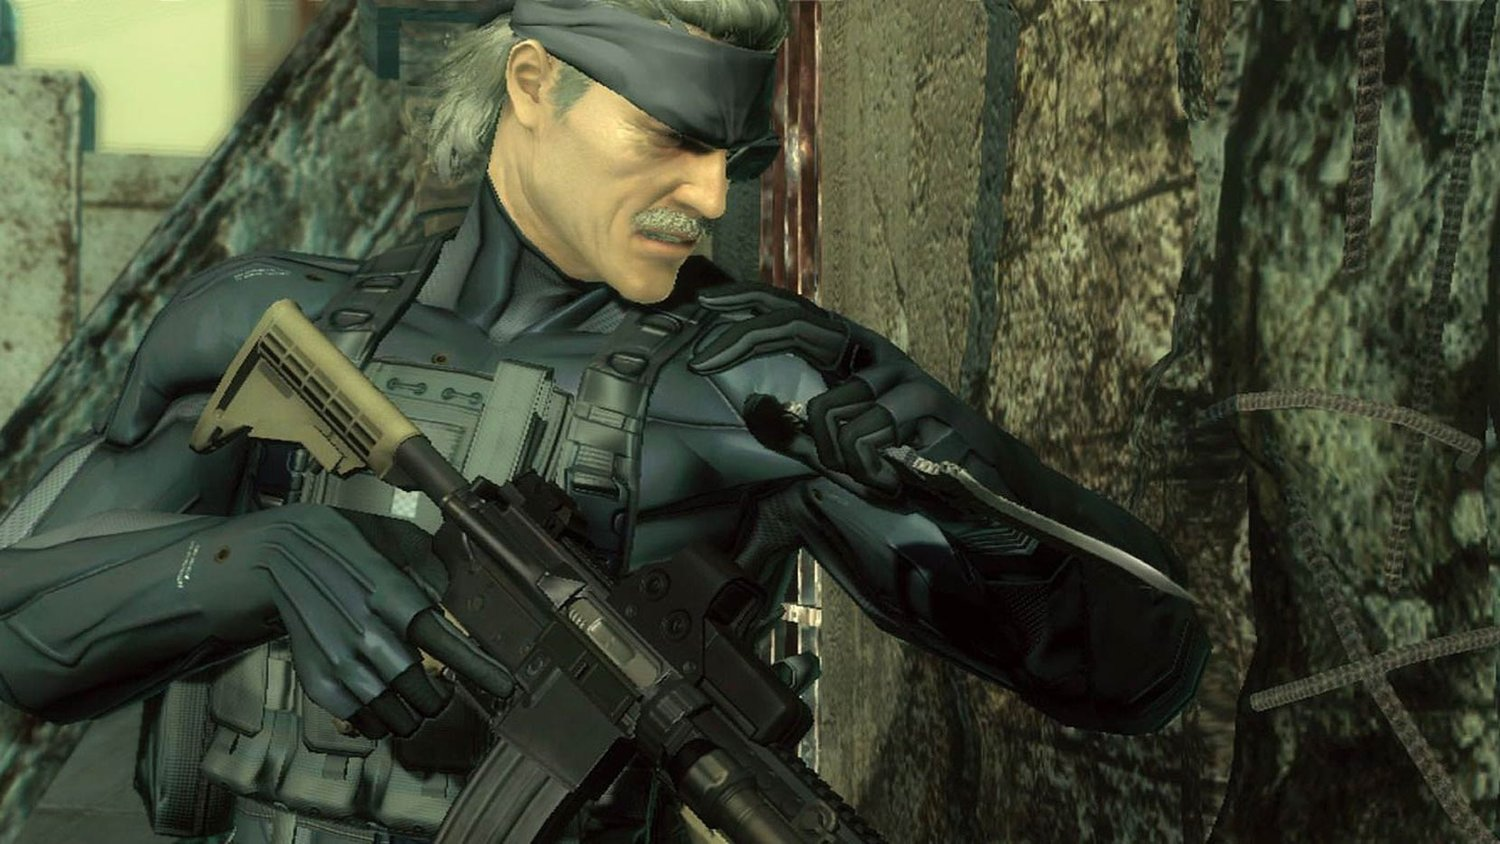 METAL GEAR SOLID Director Explains Why Most Video Game Movies Suck